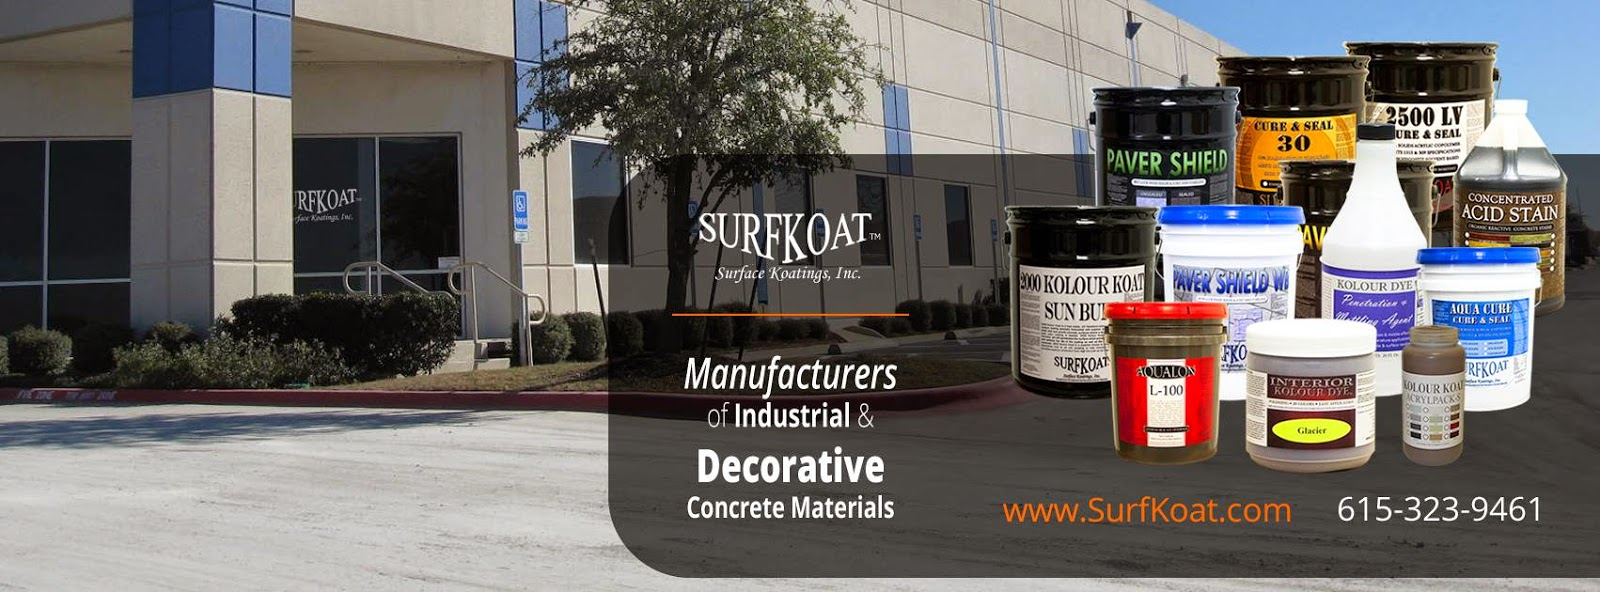 Concrete Sealer Products, Best Concrete Sealers, Trusted Epoxy Floor Coatings